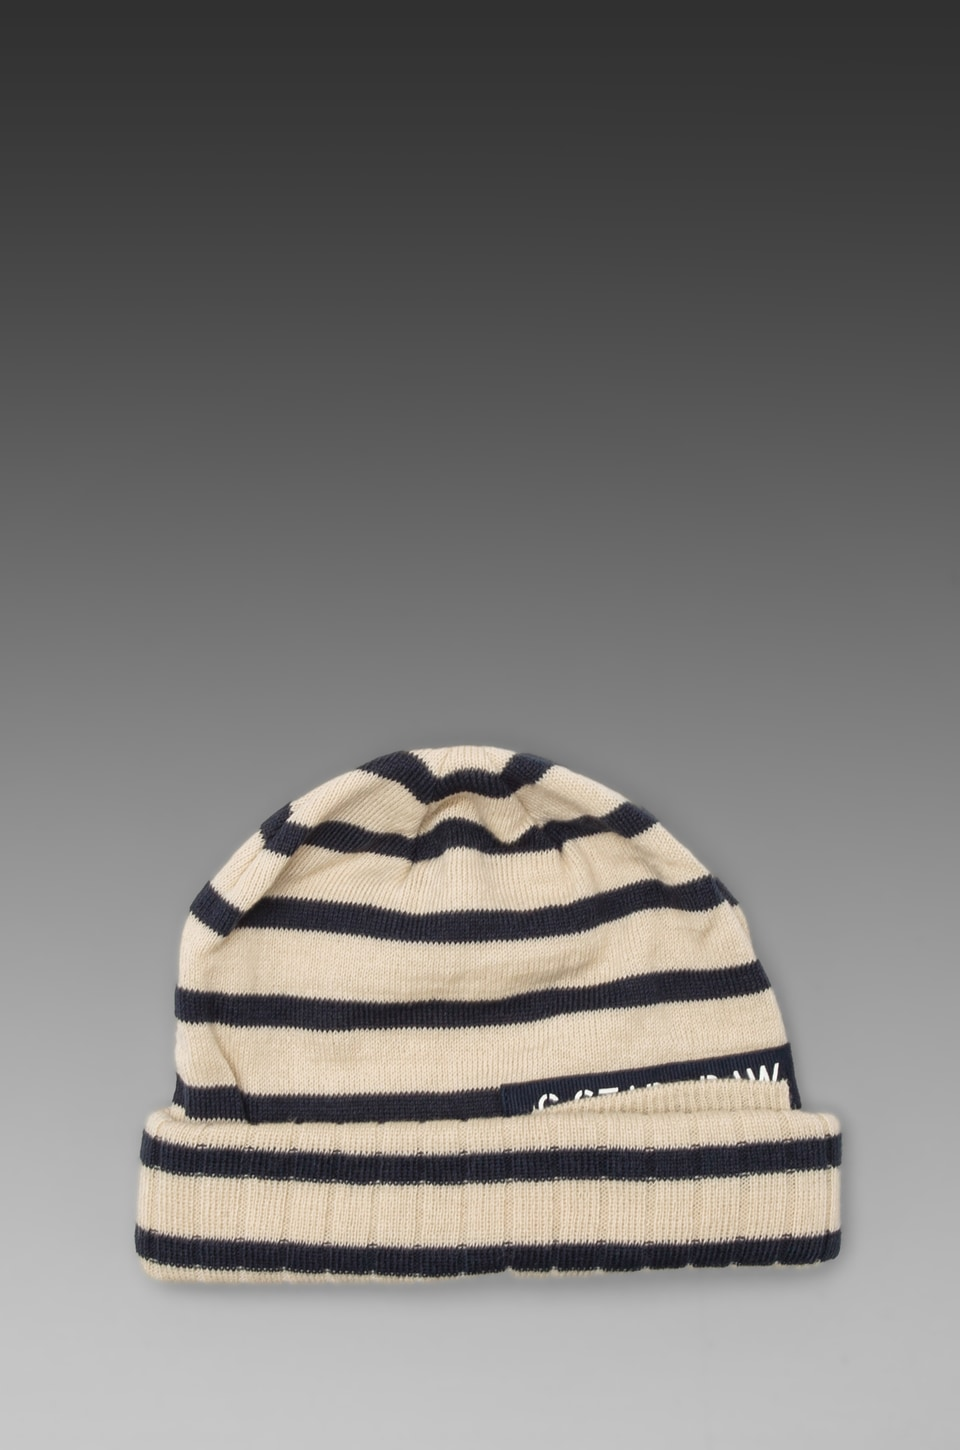 G-Star Grant Beanie in Japan Blue/Bisque